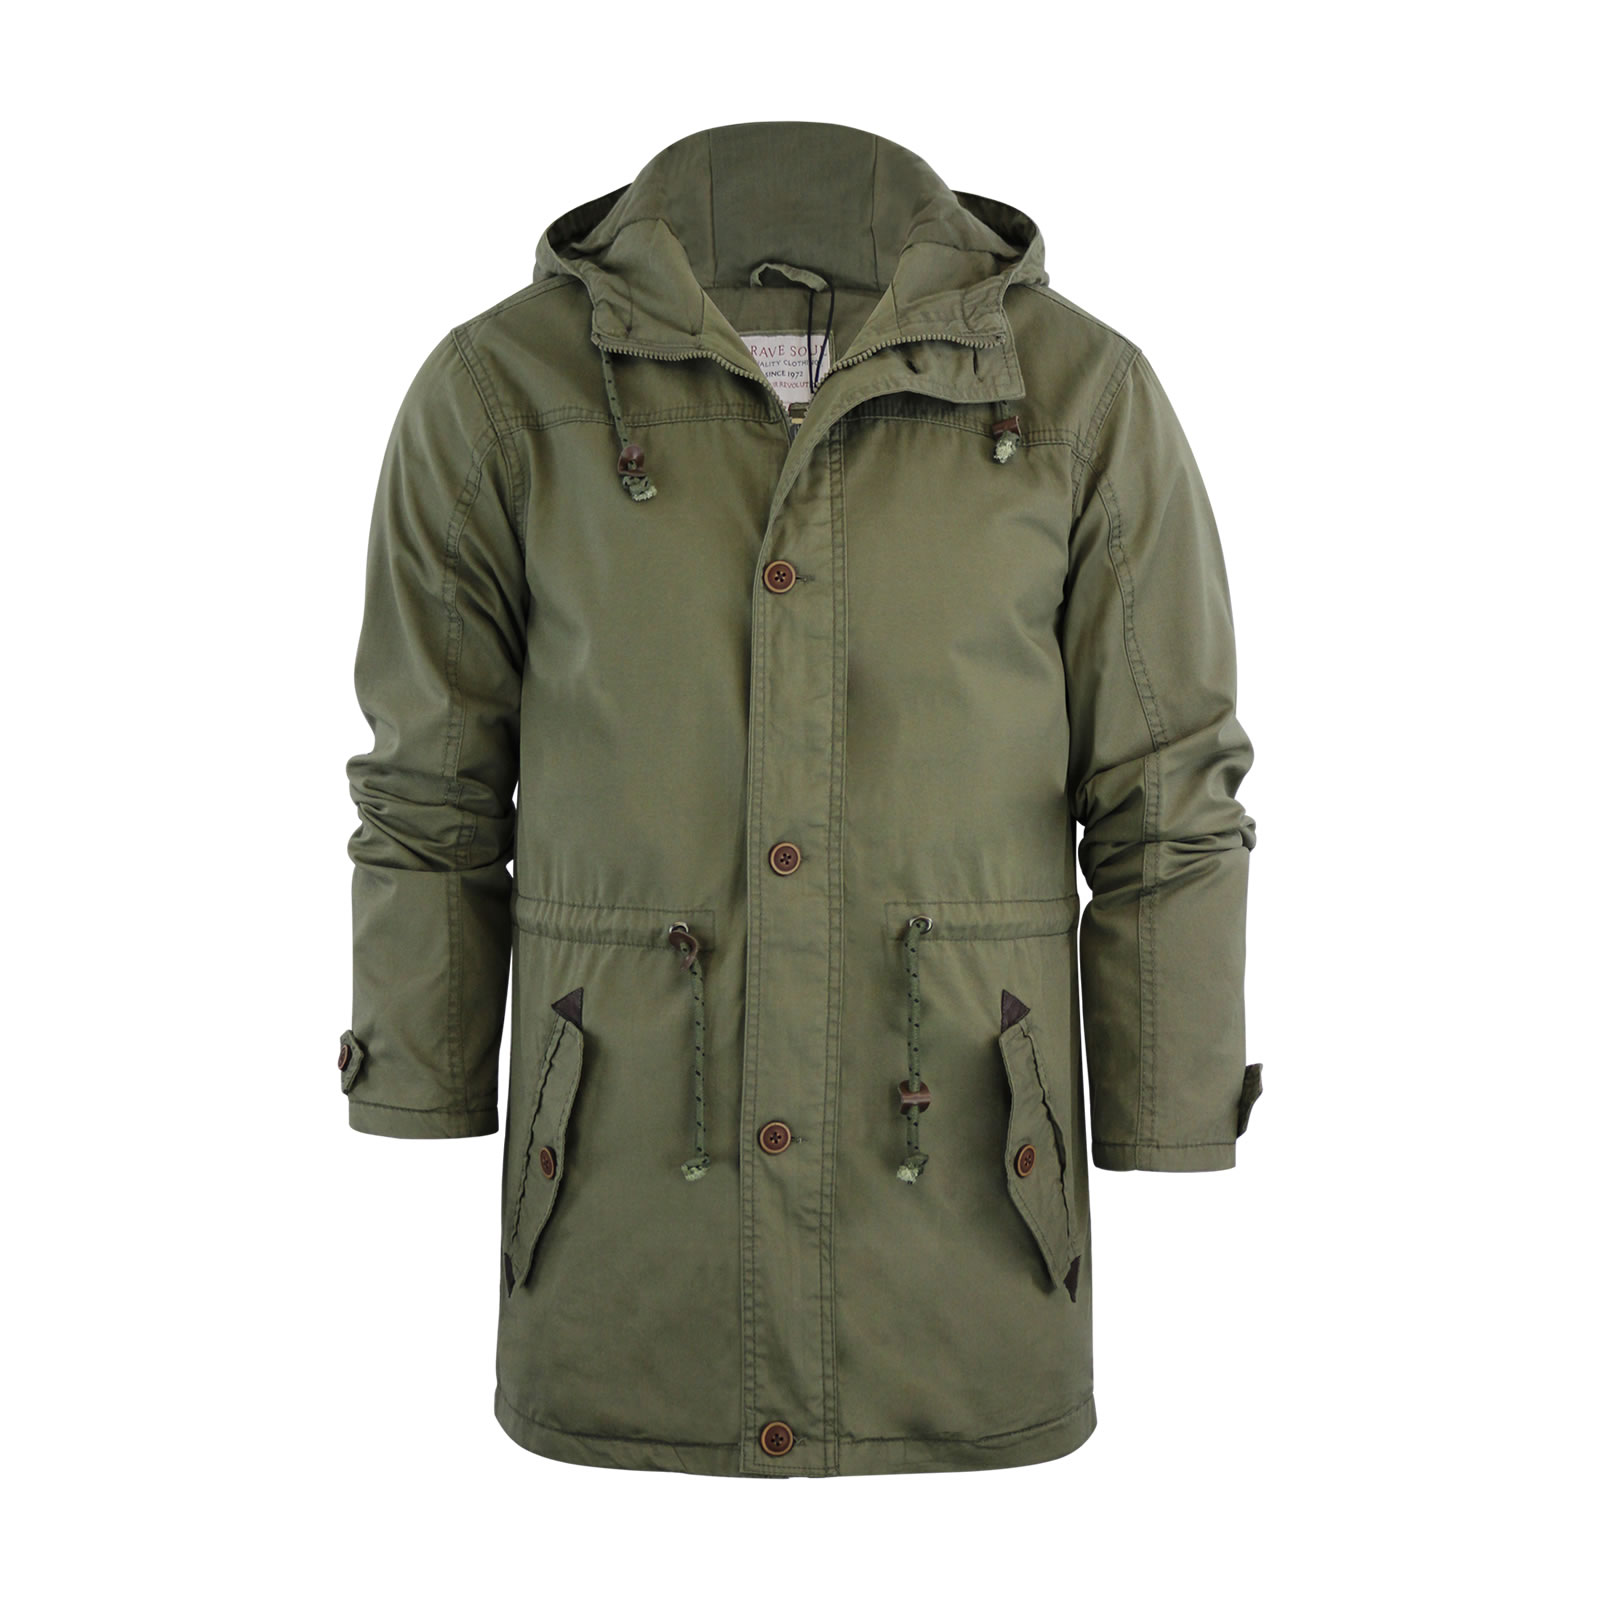 Product Features Fluffy Cotton Jacket Provide Warm In Autumn/ Early Winter Days.